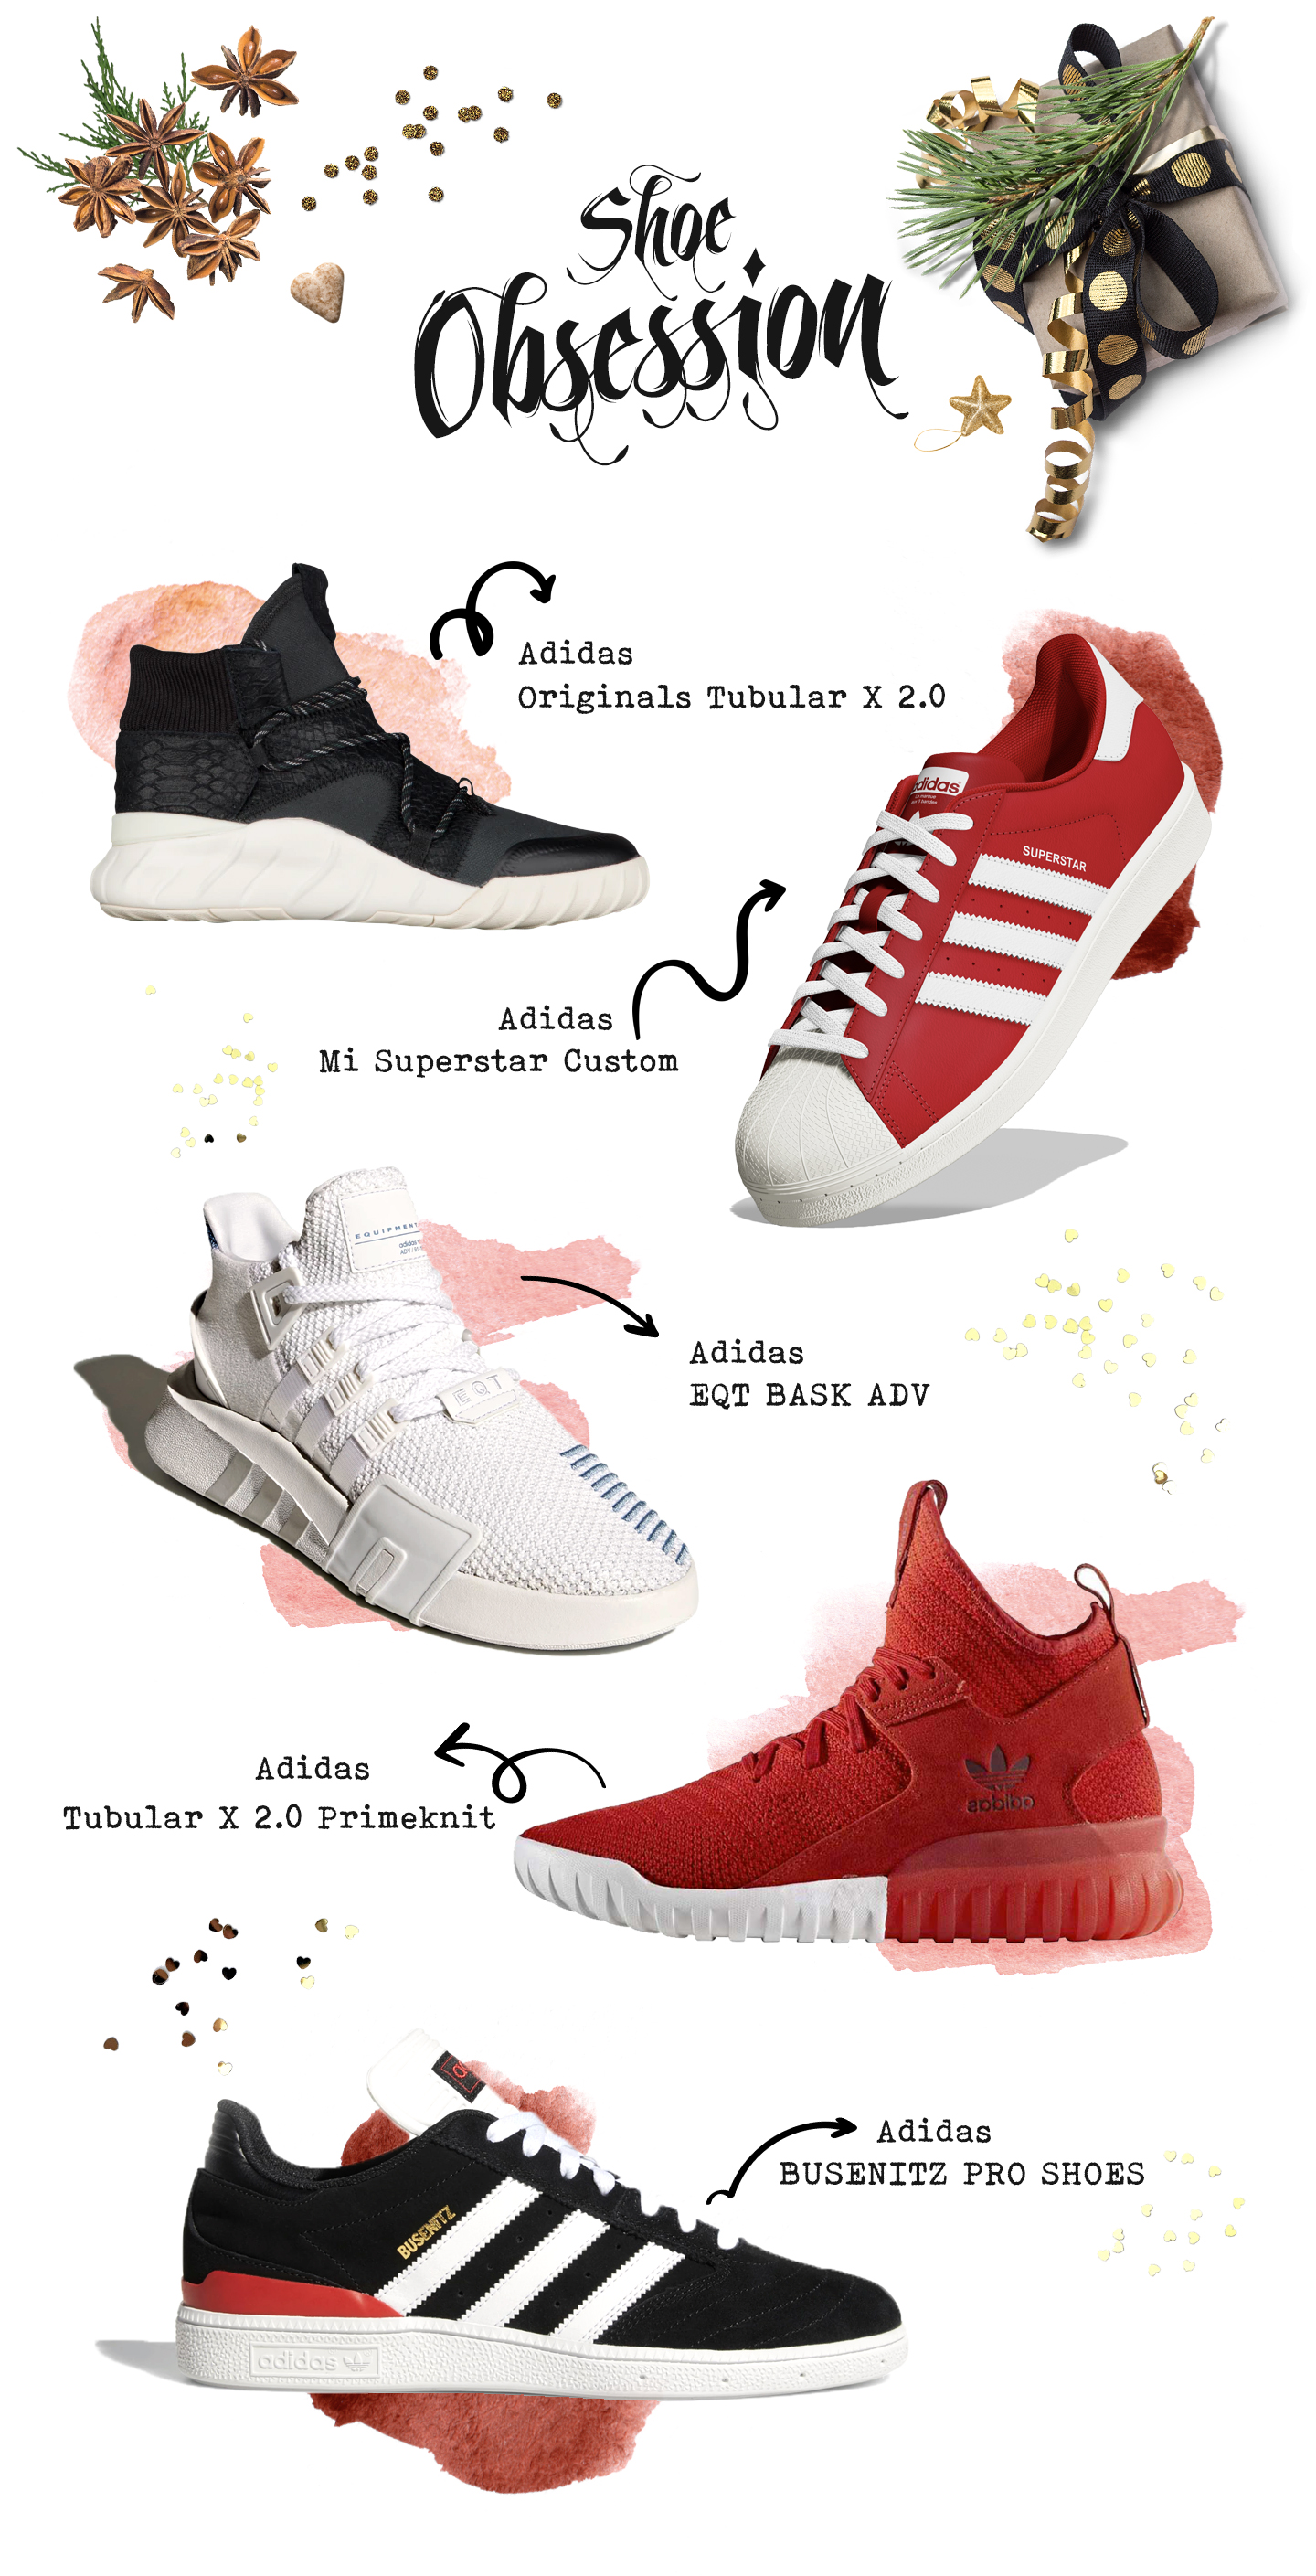 Adidas Shoes Gift Guide